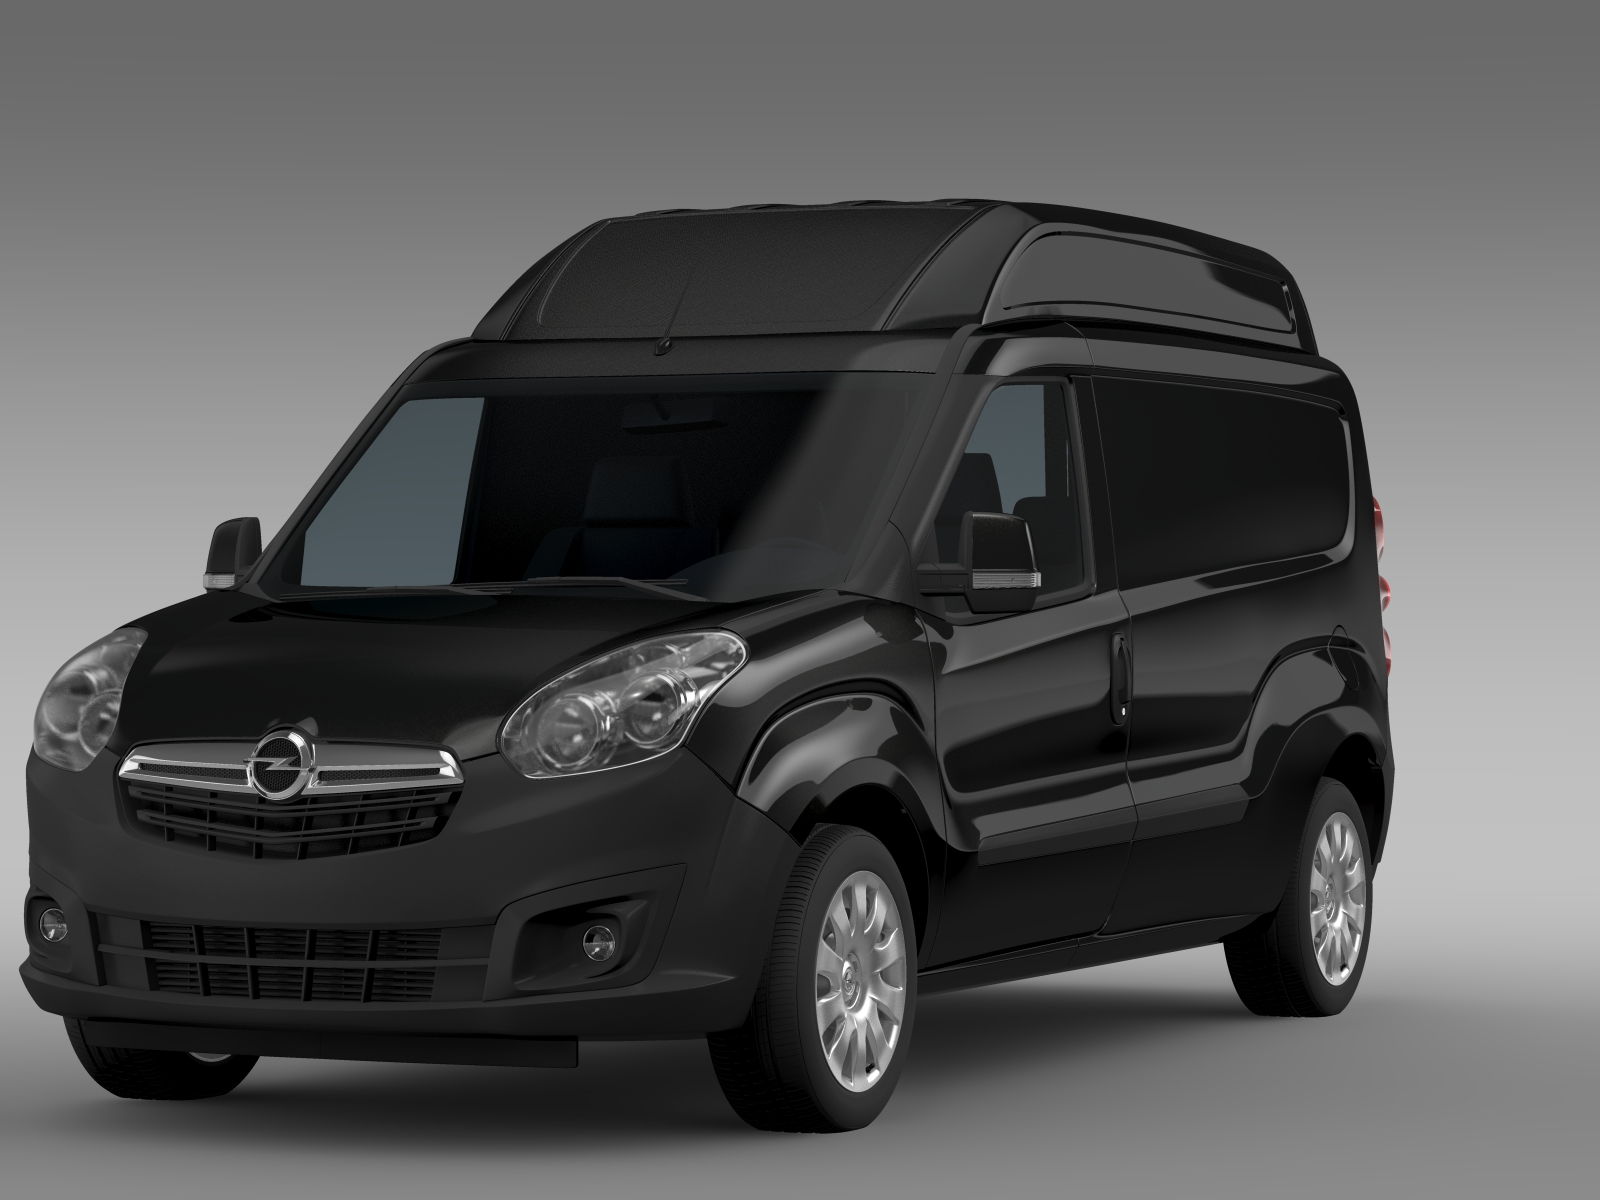 opel combo lwb high roof cargo d 2015 3d model buy opel combo lwb high roof cargo d 2015. Black Bedroom Furniture Sets. Home Design Ideas